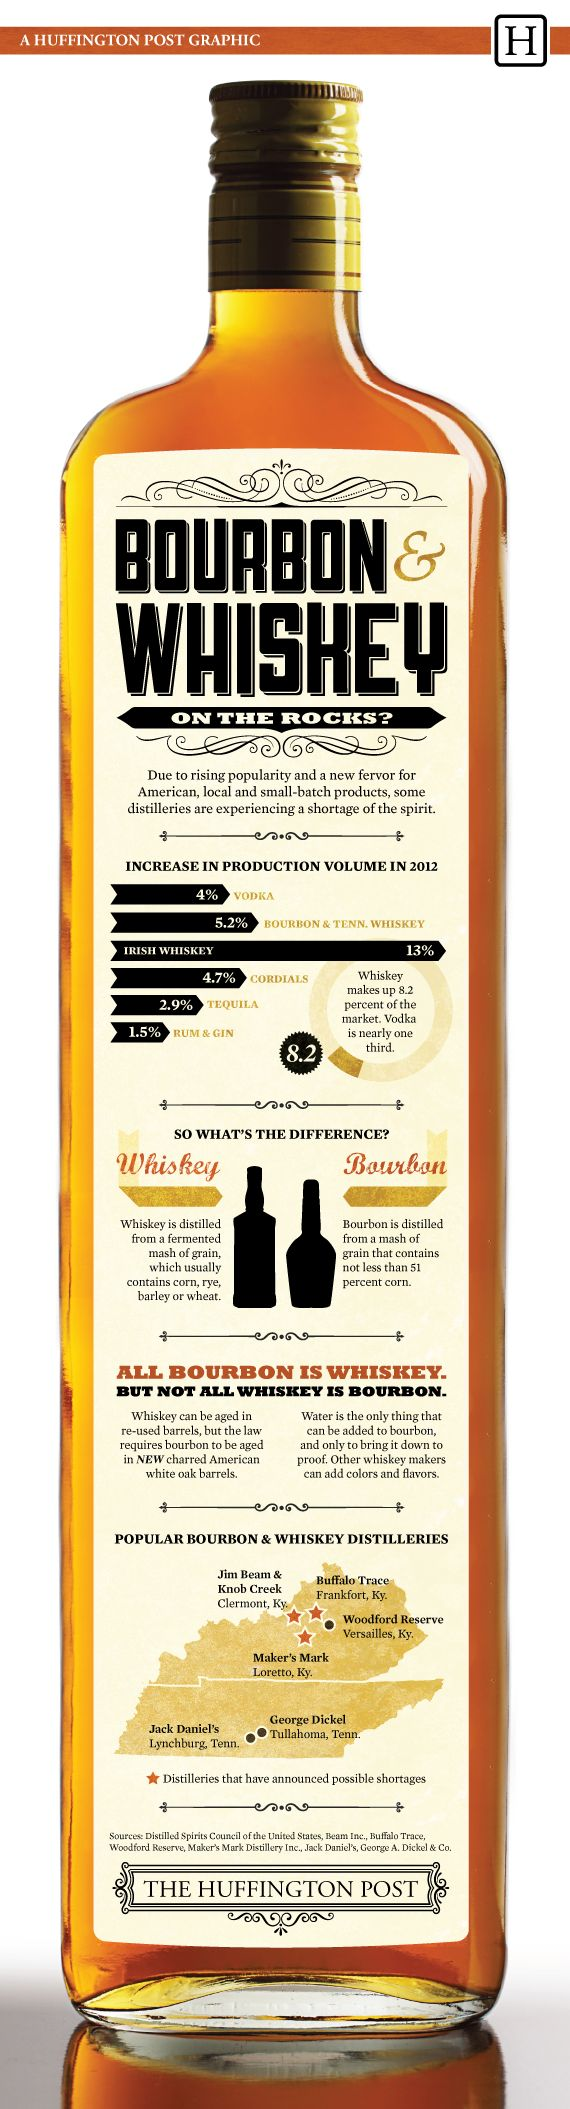 What you might not have known about whiskey